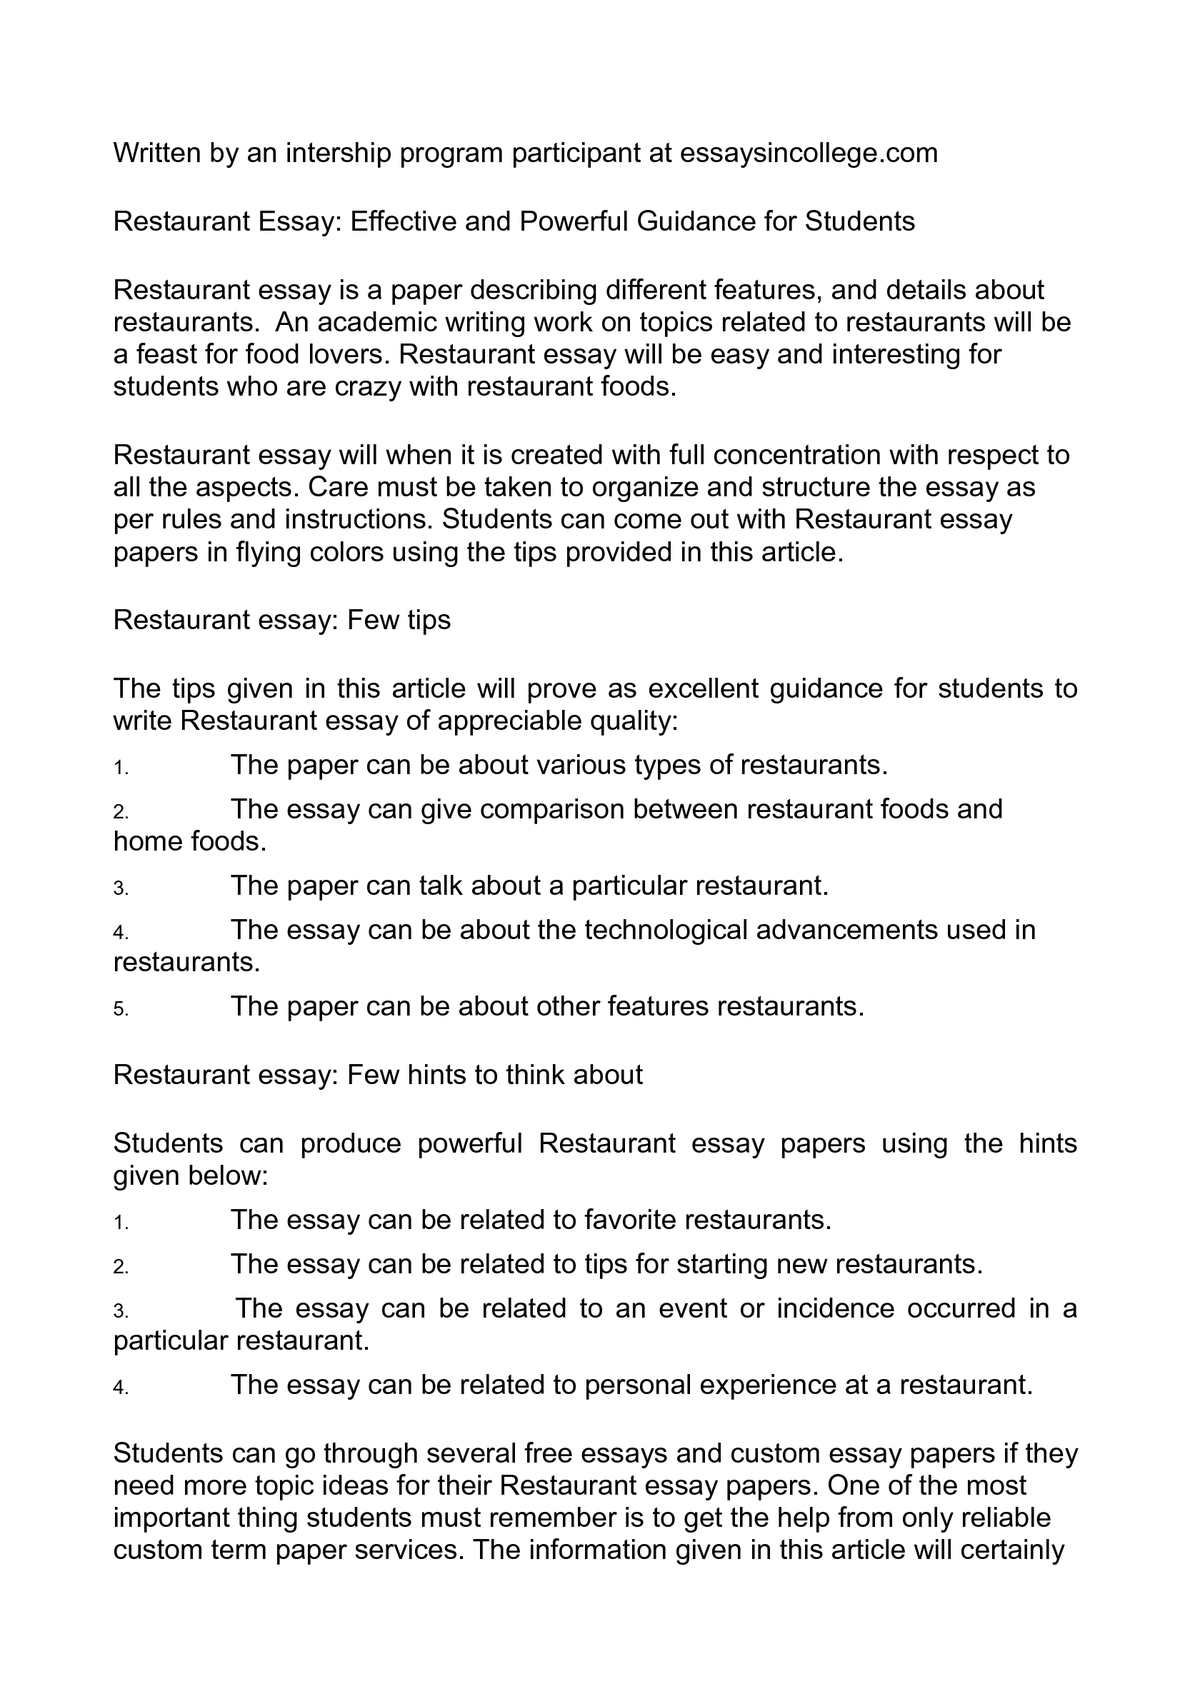 005 Essay Example About Favorite Restaurant Beautiful Your Write An Full